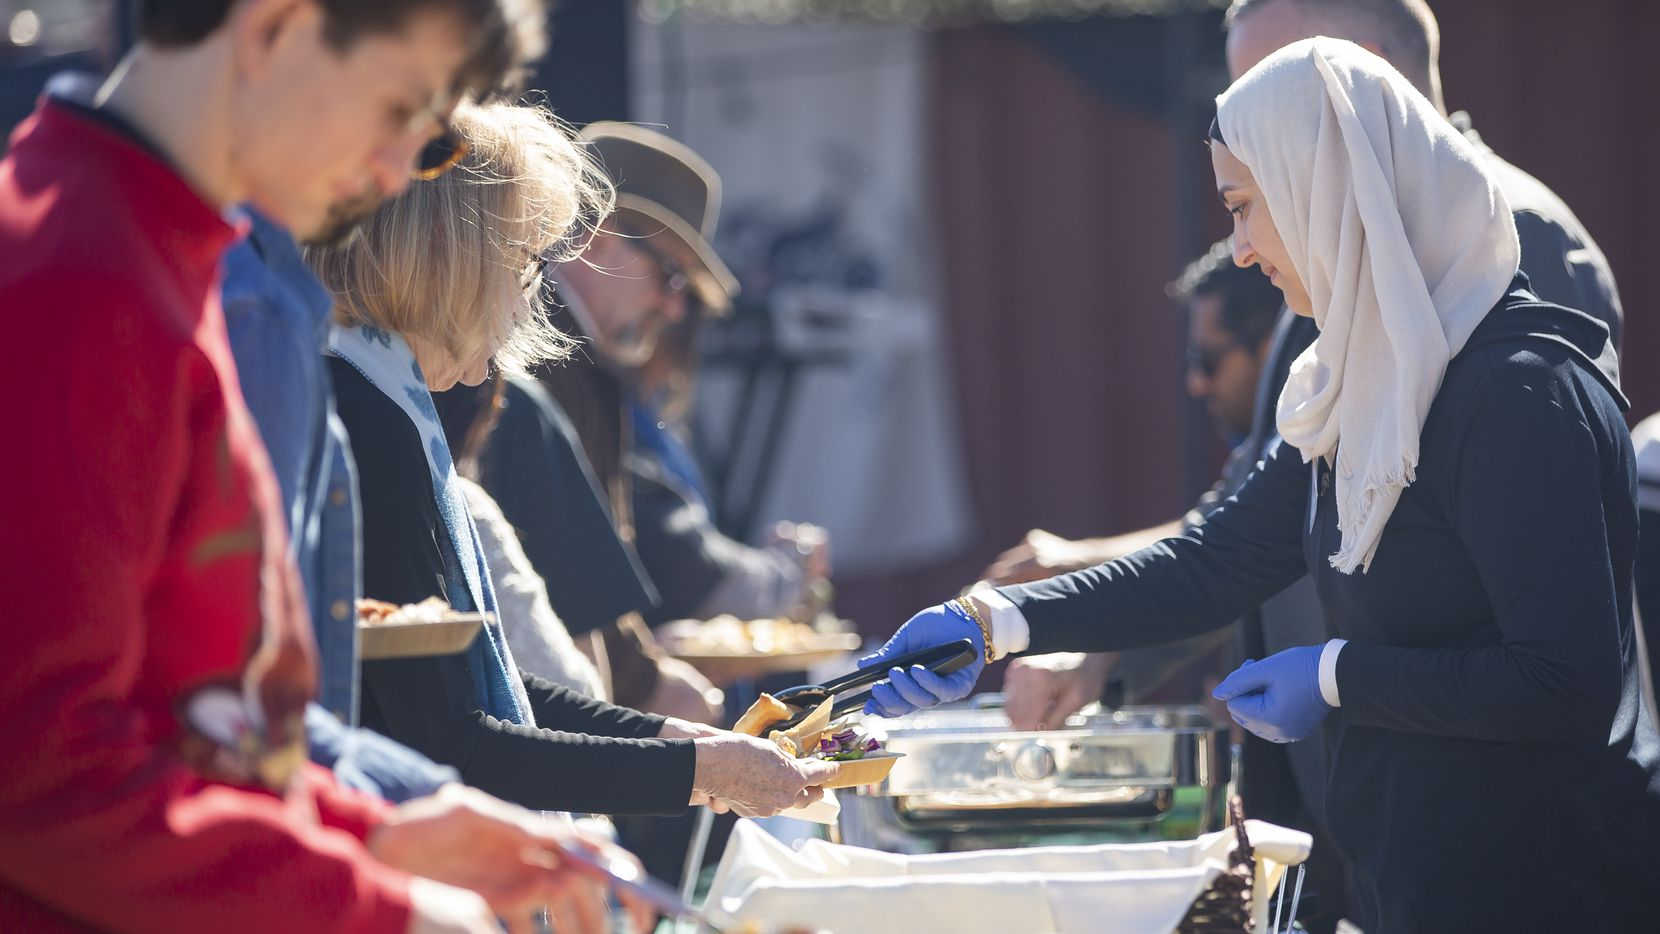 Members of Break Bread, Break Borders serve Iraqi, Syrian dishes and barbecue during an event in partnership with Nasher Prize winner Michael Rakowitz at the F.A.R.M., Farmers Assisting Returning Military, on Feb. 8, 2020 in Dallas. (Juan Figueroa/ The Dallas Morning News)